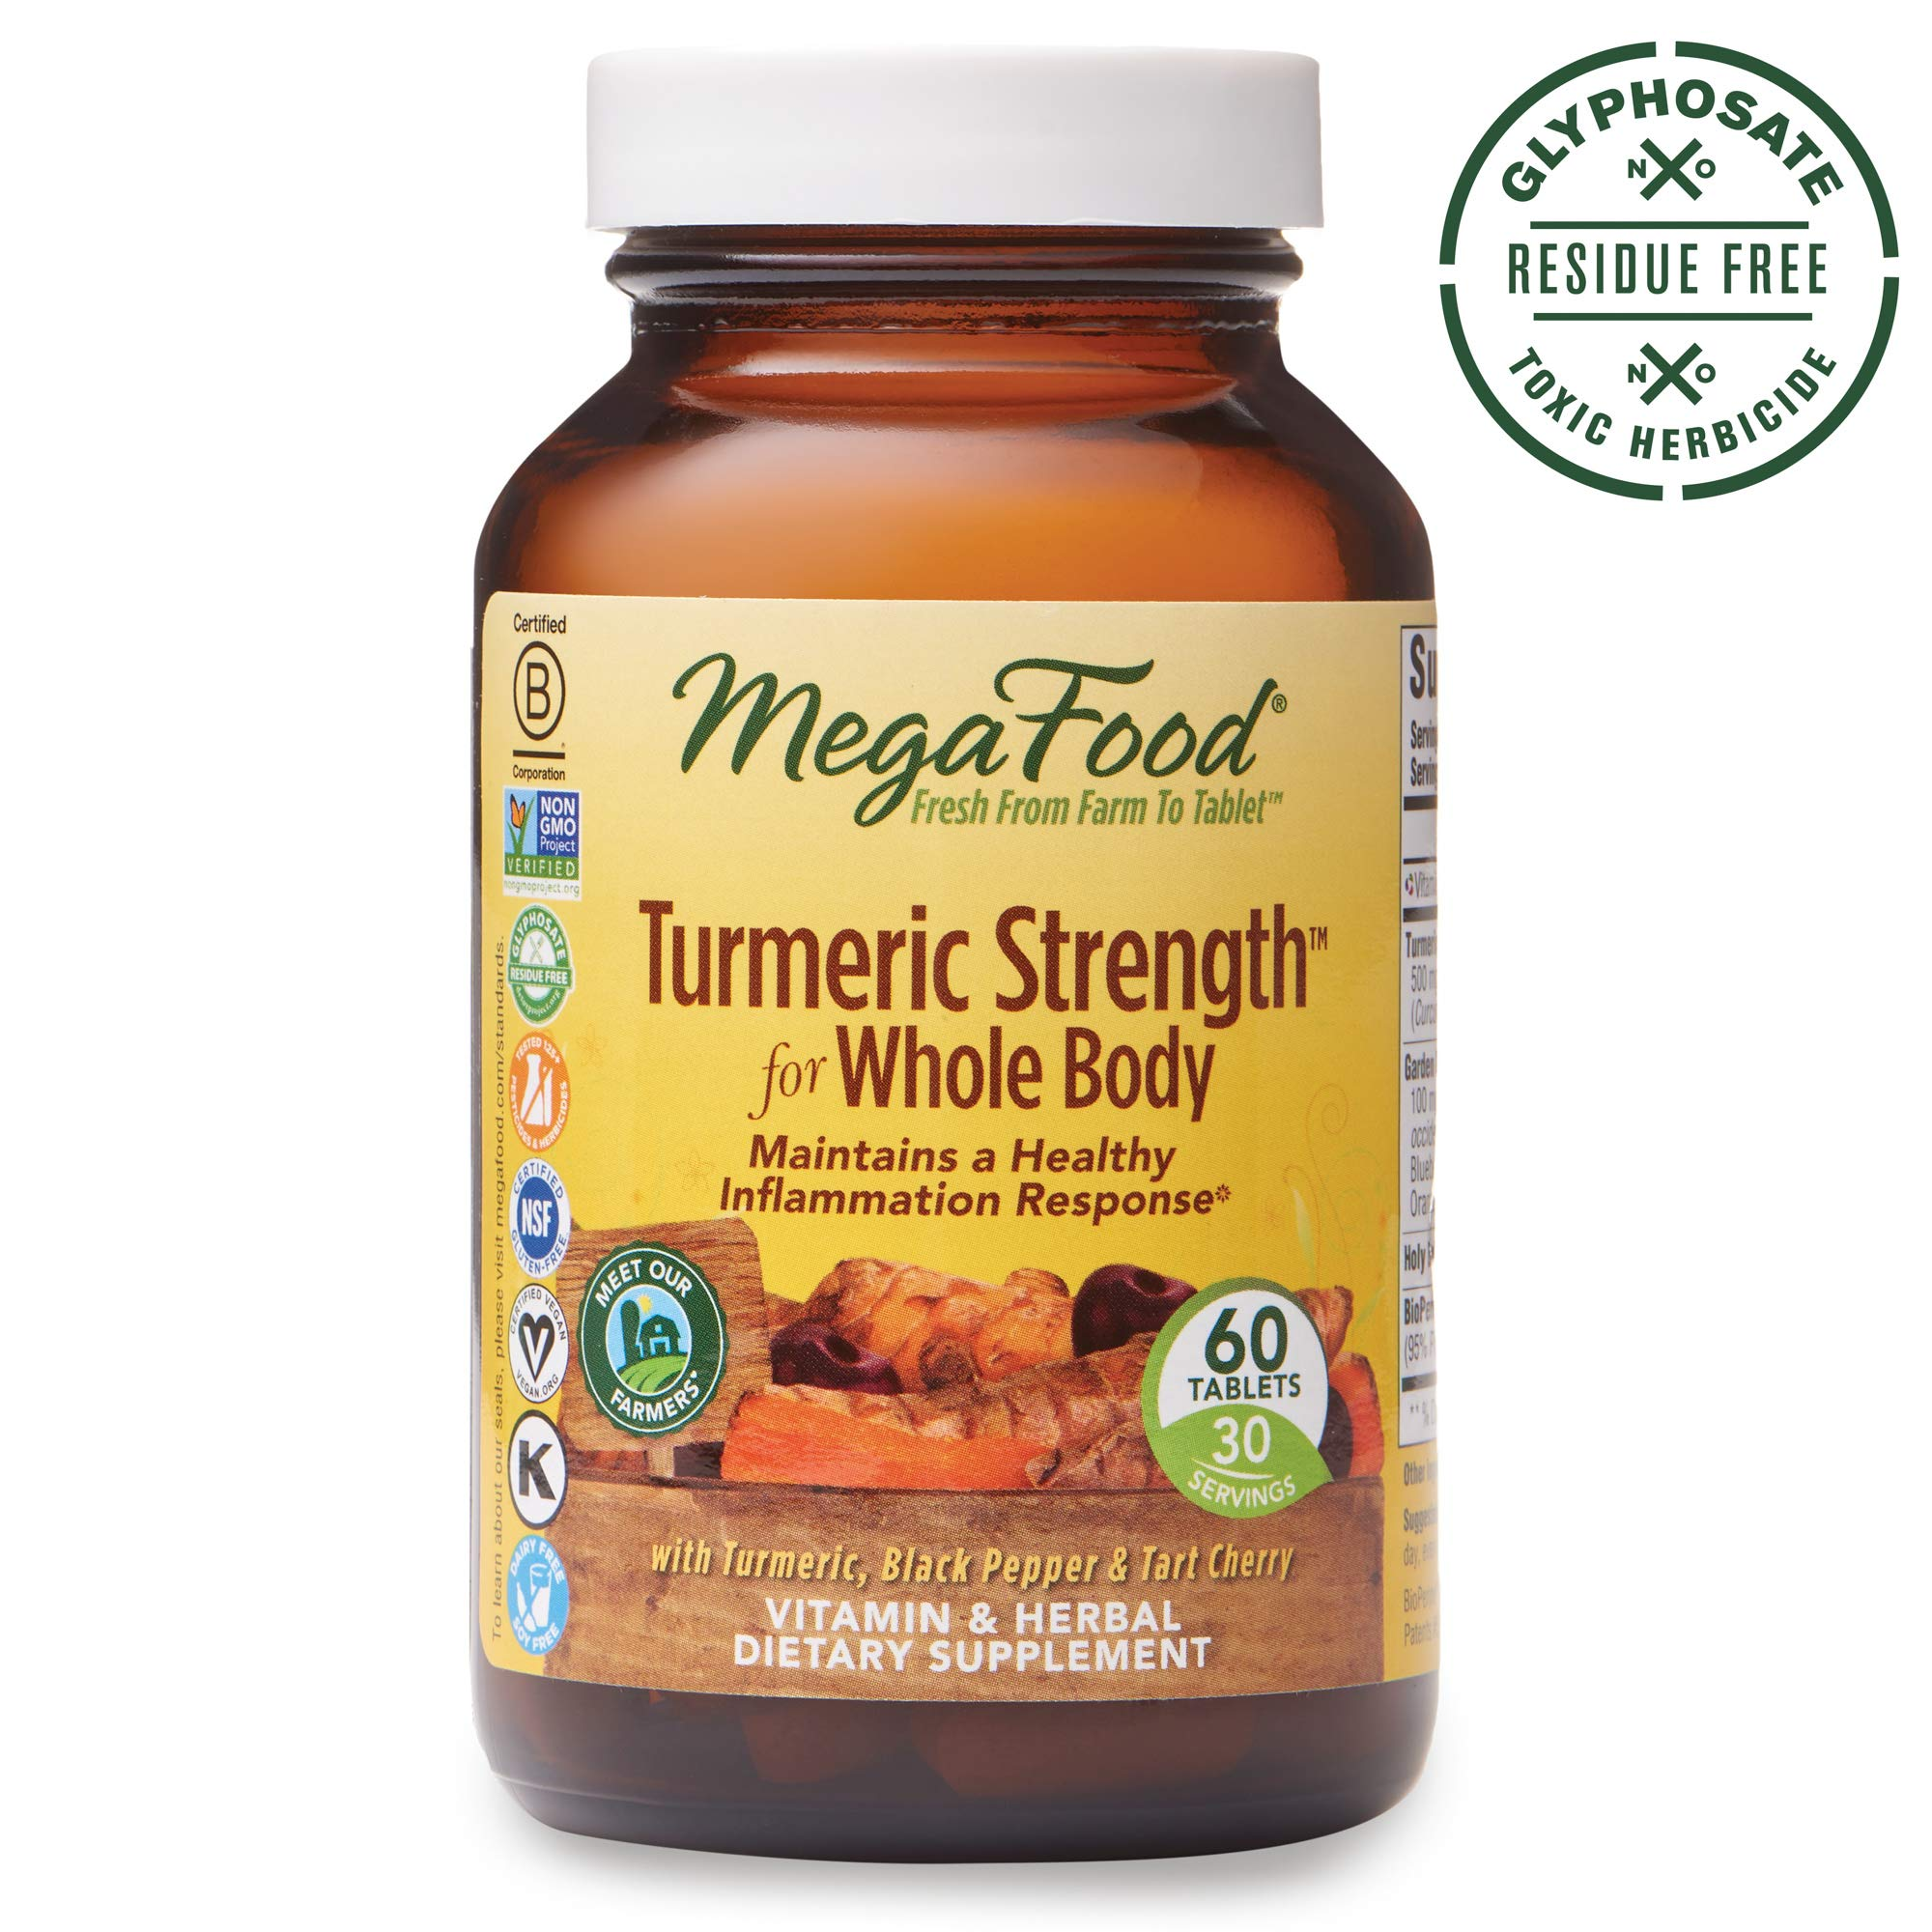 MegaFood, Turmeric Strength for Whole Body, Maintains a Healthy Inflammation Response, Vitamin and Herbal Dietary Supplement, Gluten Free, Vegan, 60 Tablets (30 Servings) (FFP)